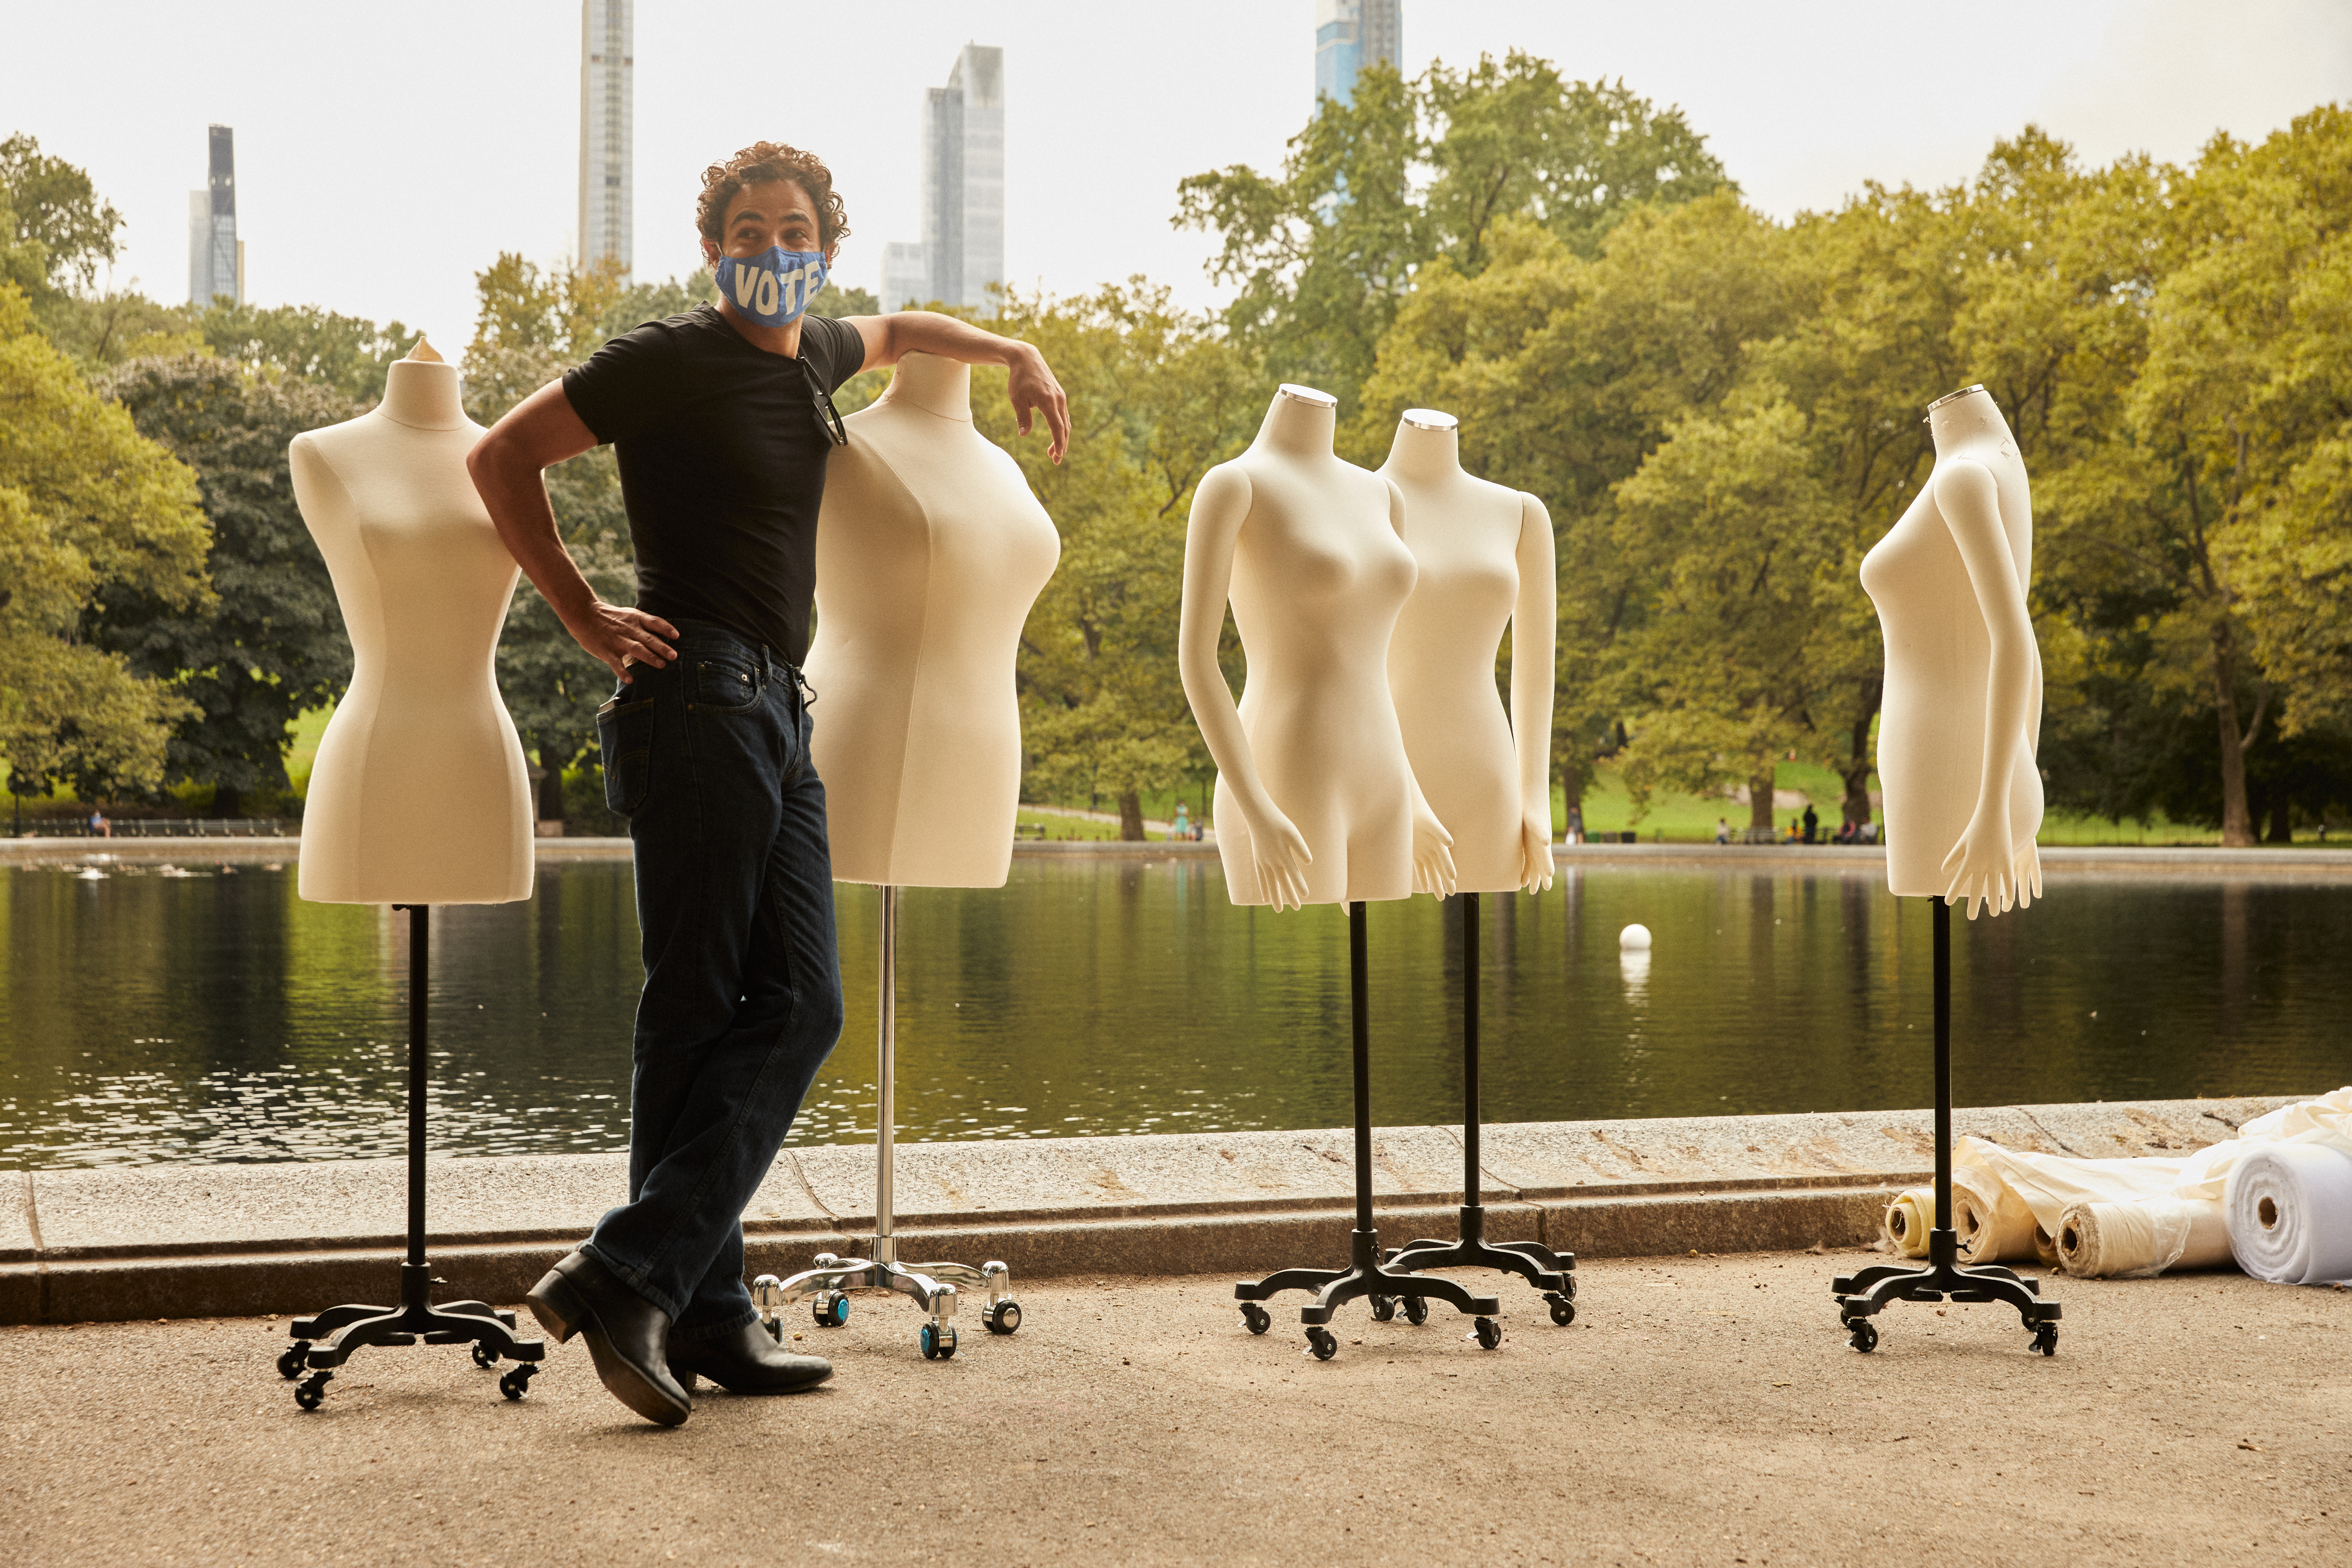 Zac Posen in his makeshift studio space alongside Central Park's Water Conservancy.